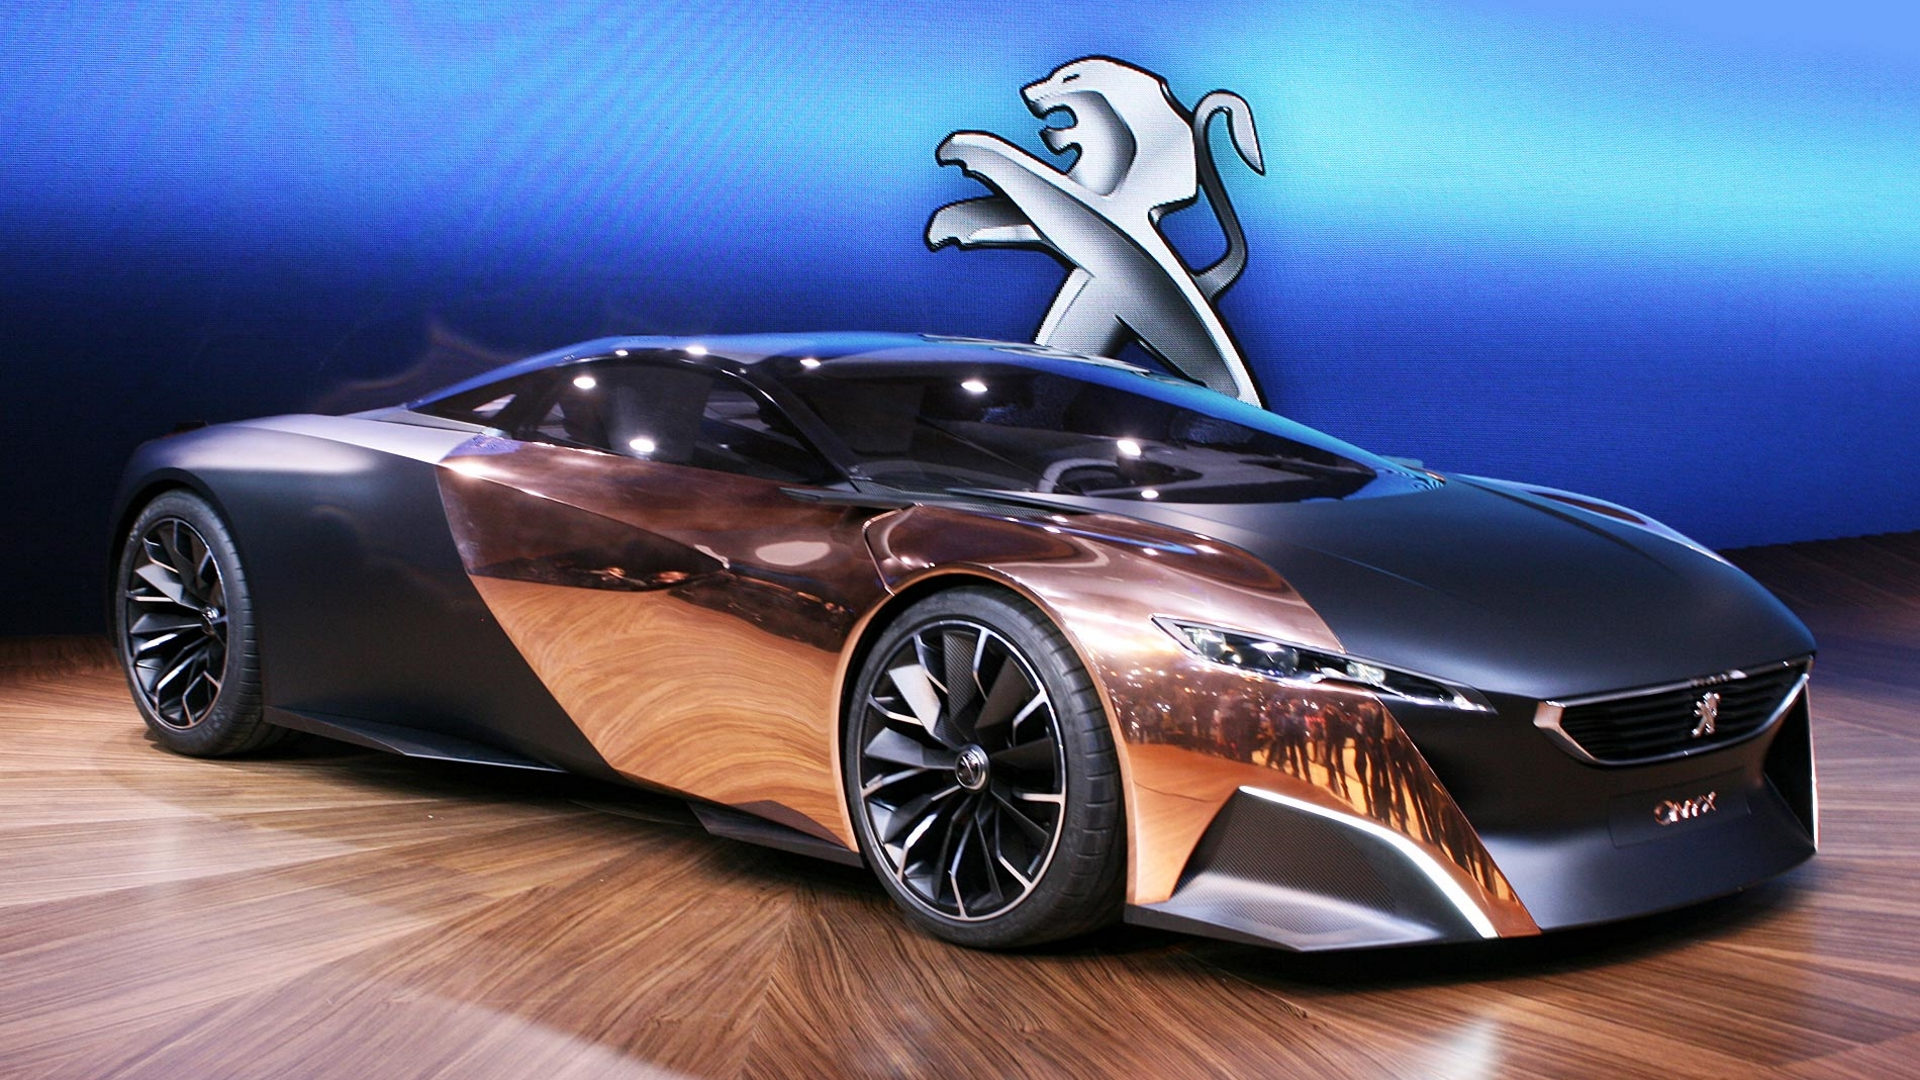 Car Slideshow Wallpaper 1 Peugeot Onyx Hd Wallpapers Background Images